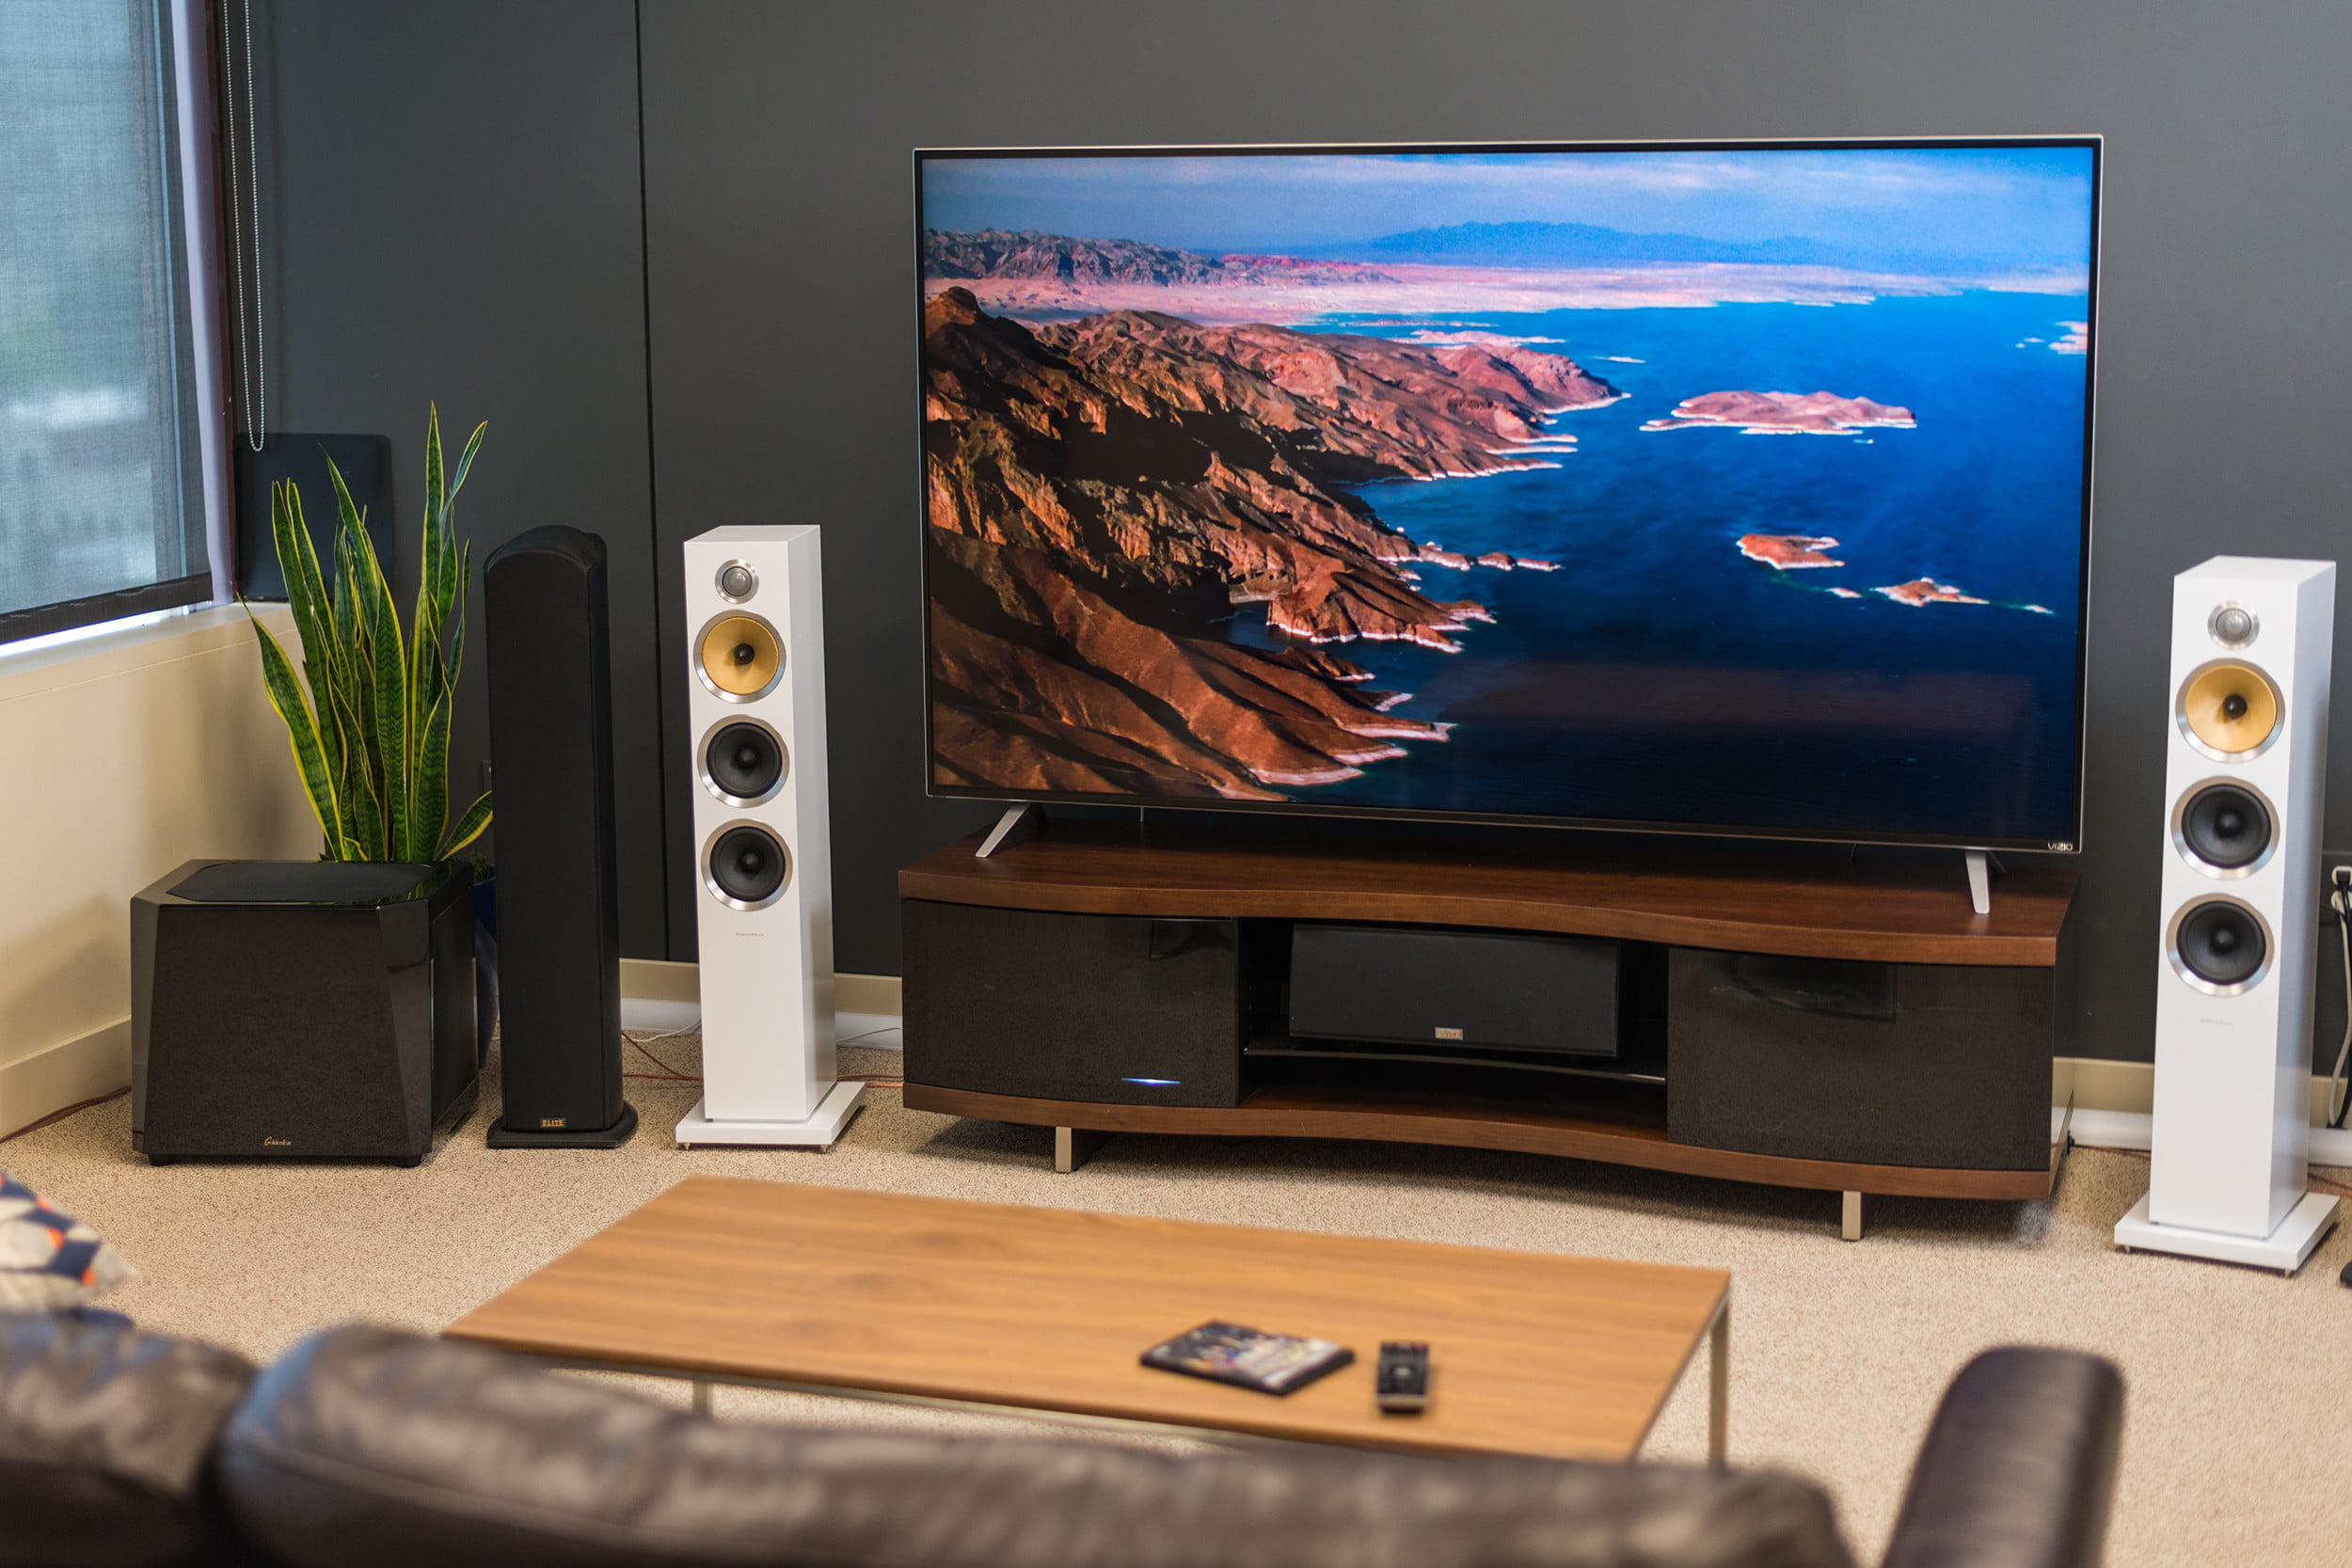 Home Entertainment Setup Guide - Free User Guide •